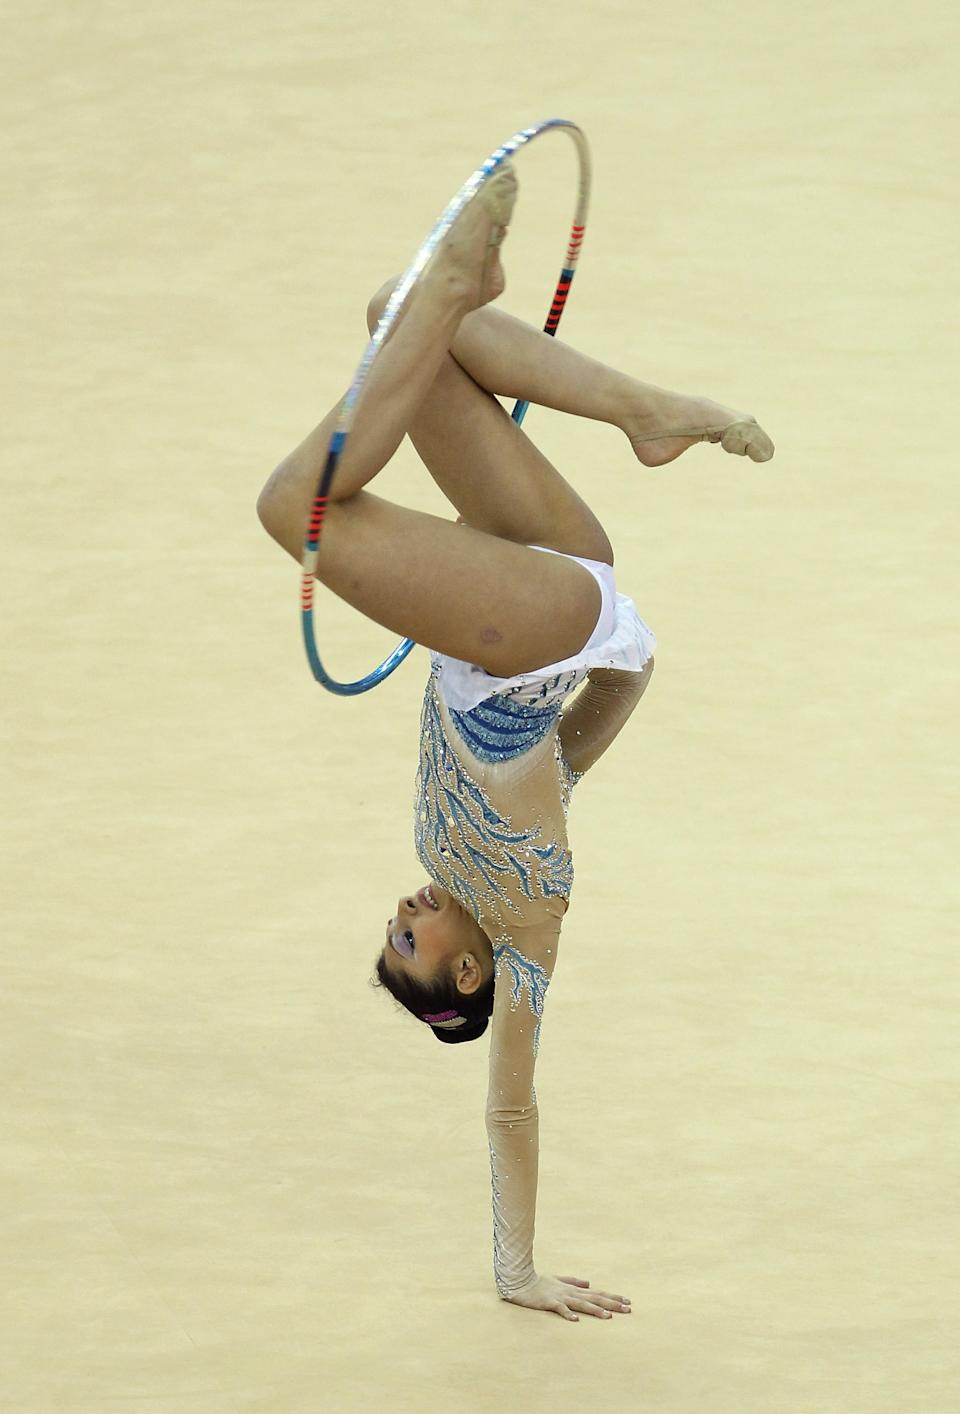 LONDON, ENGLAND - JANUARY 16: Varvara Filiou of Greece in action in the Individual All-Around during the FIG Rhythmic Gymnastics Olympic Qualification round at North Greenwich Arena on January 16, 2012 in London, England. (Photo by Ian Walton/Getty Images)